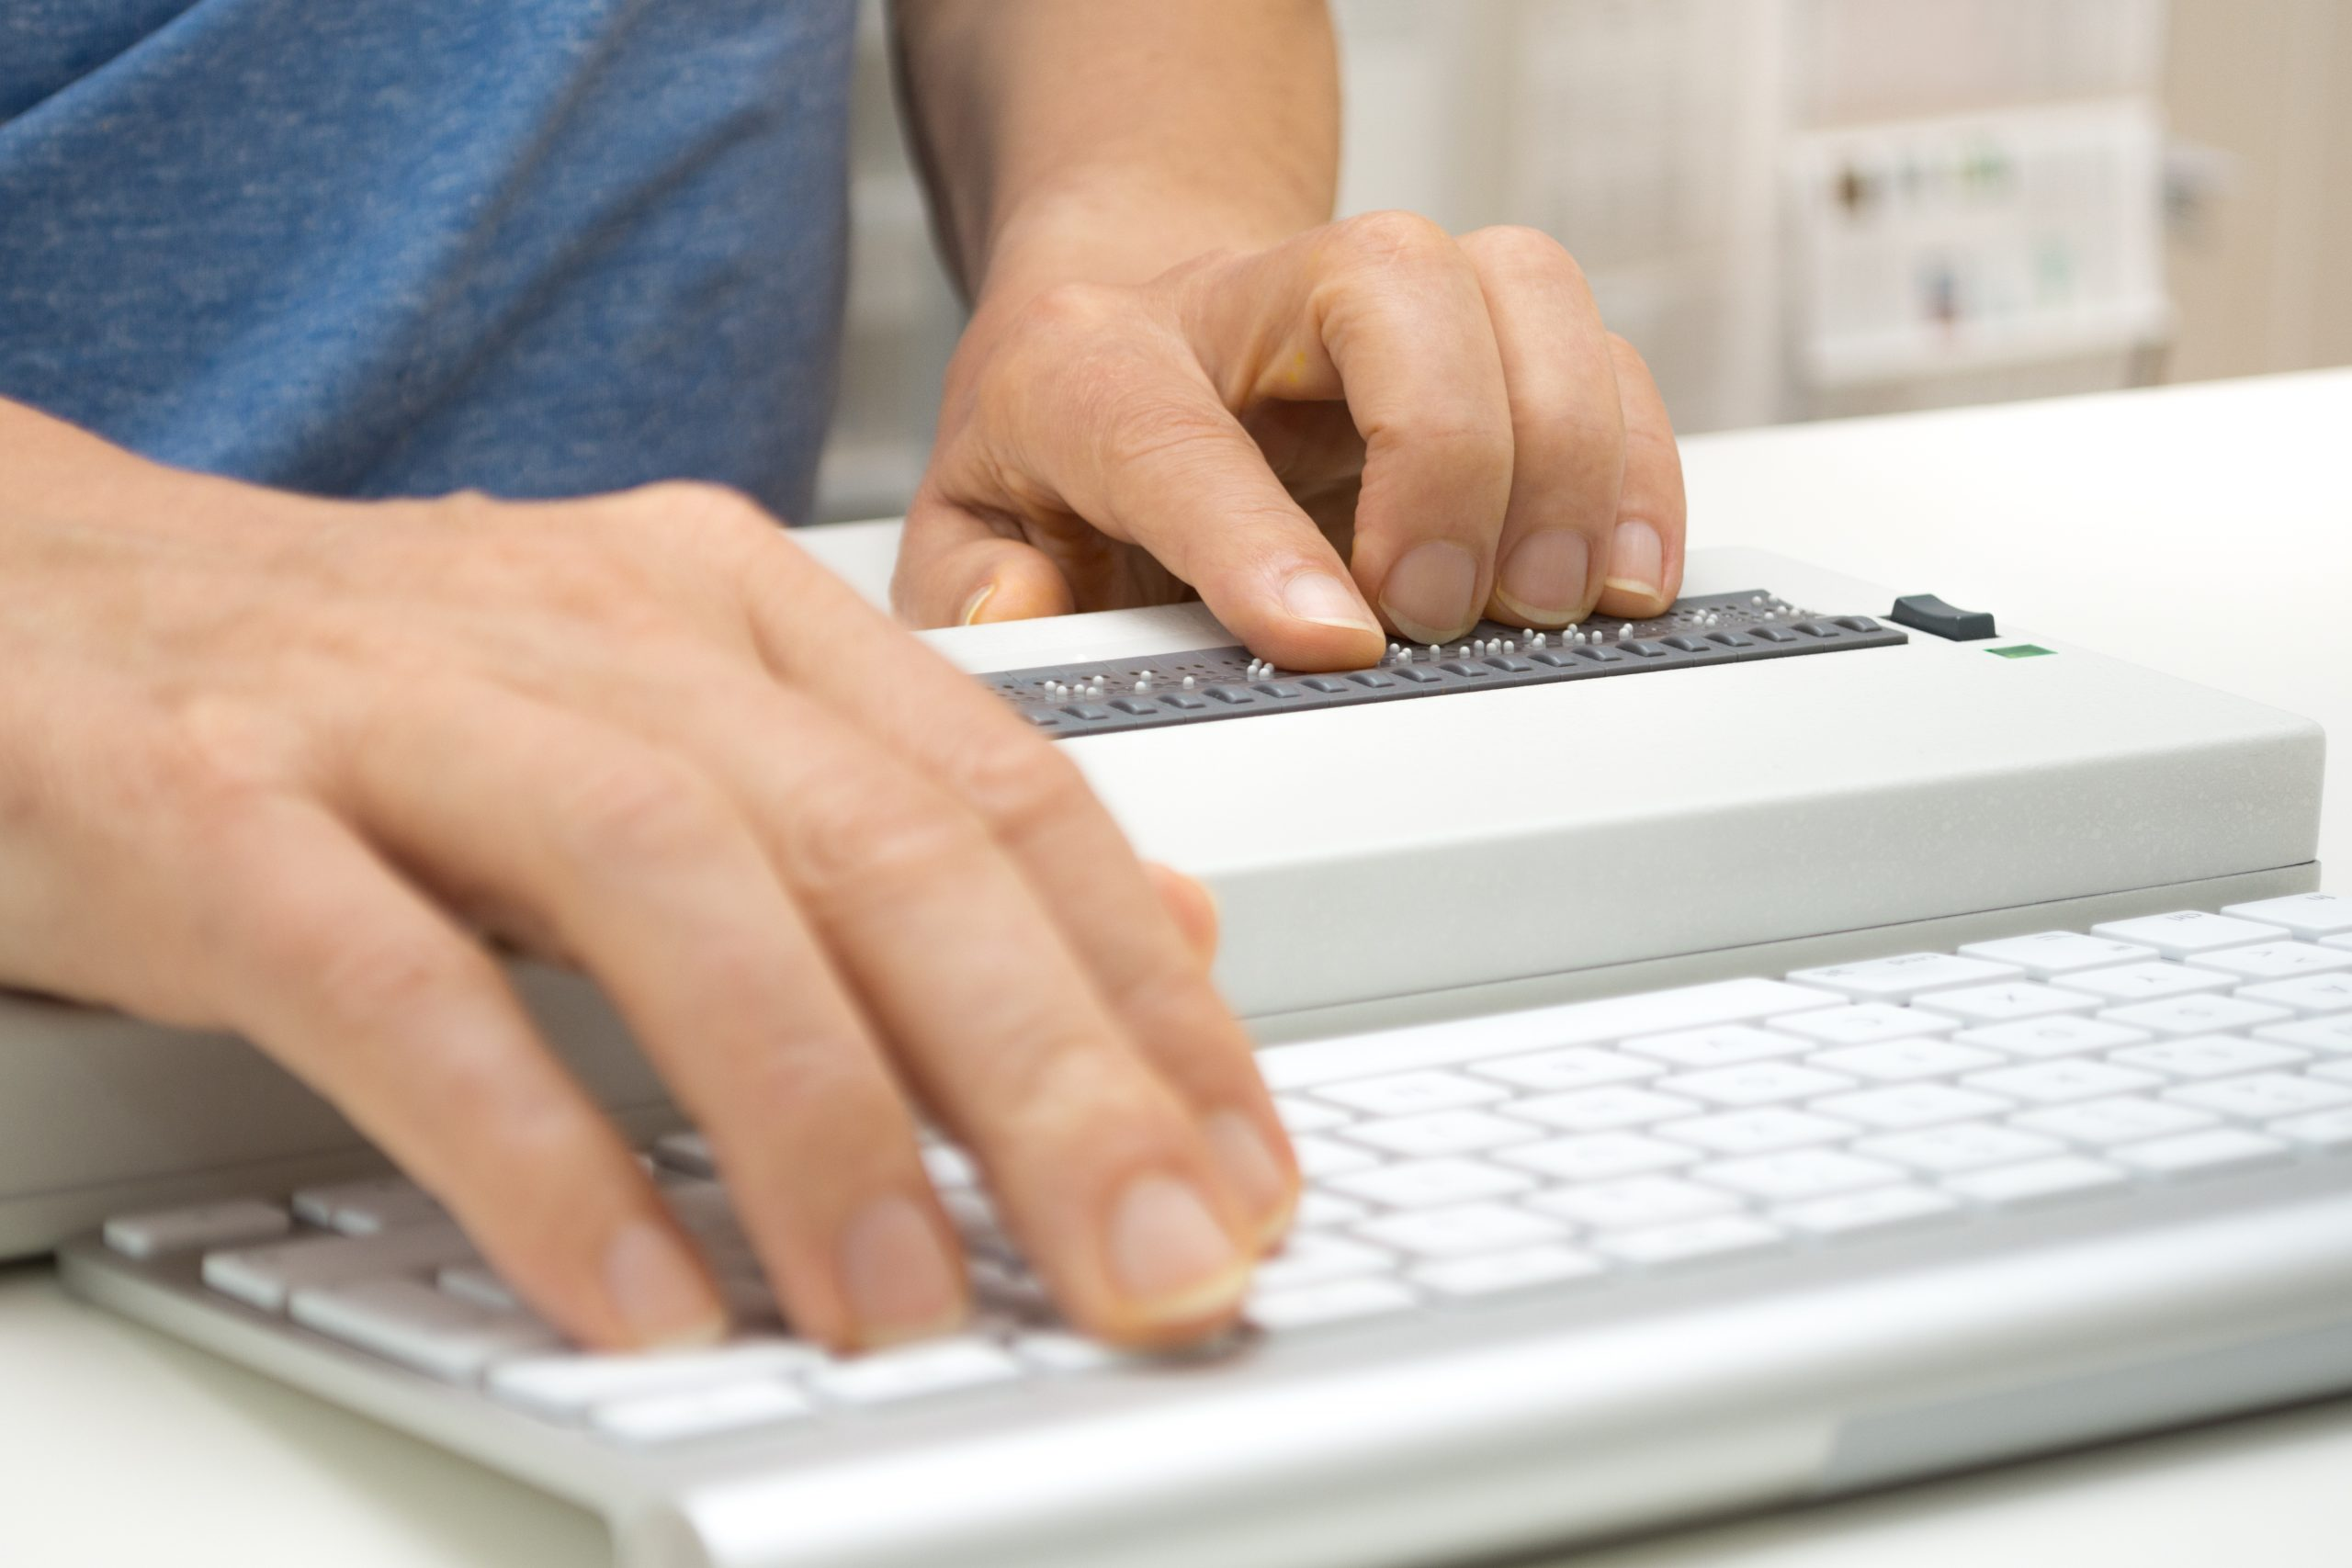 Cropped photo of an individual working on computer with assistive technology; braille display and keyboard.